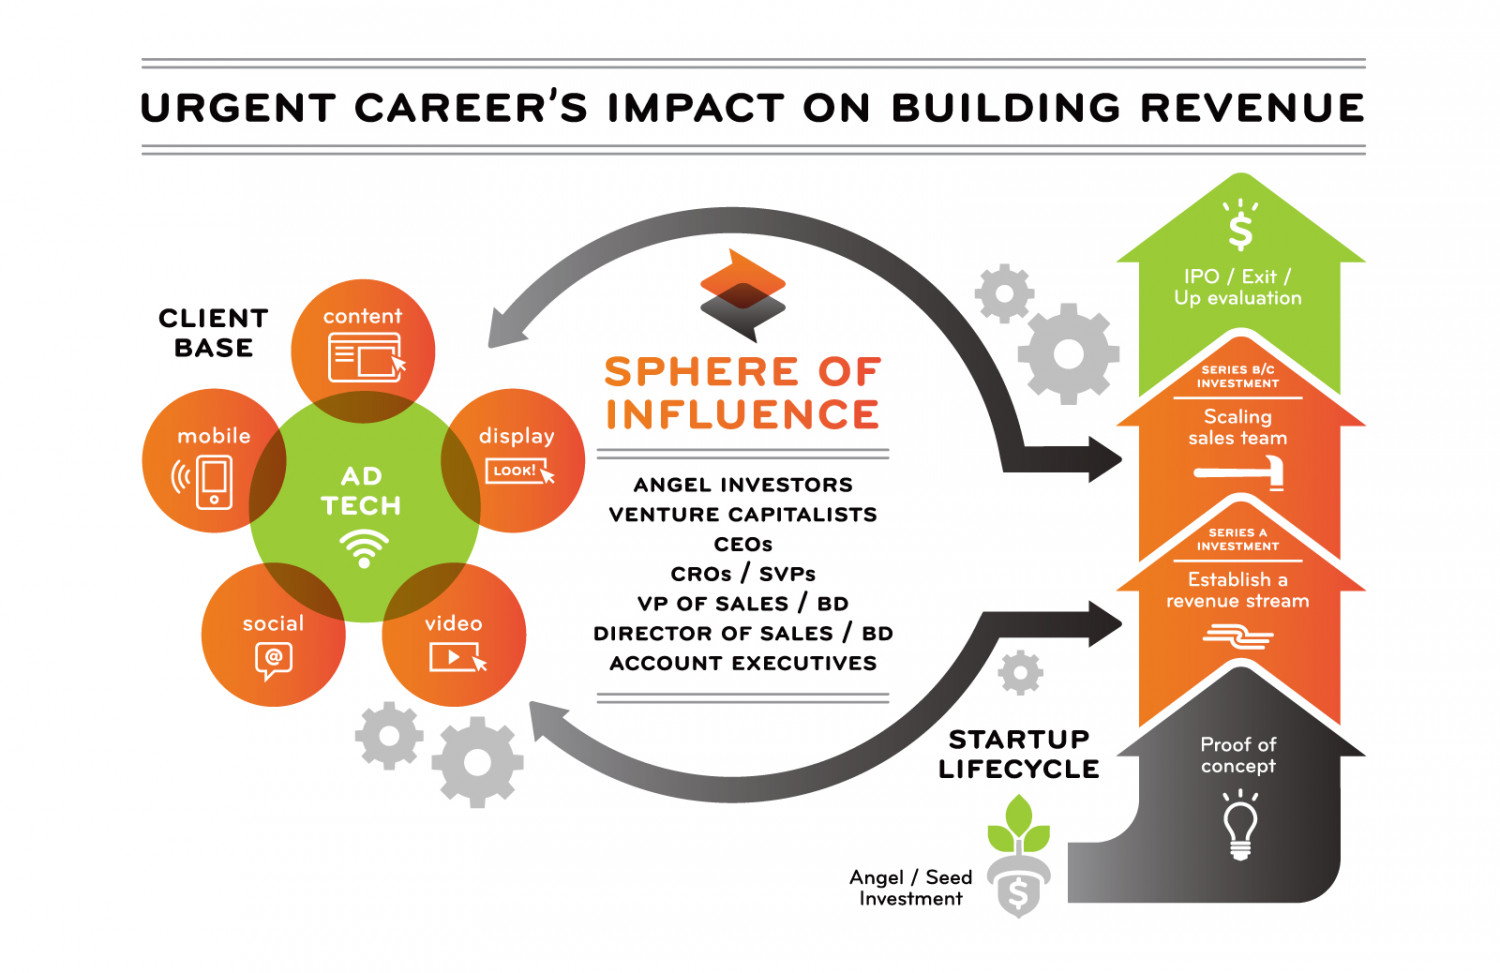 Urgent Career's Impact On Building Revenue Infographic